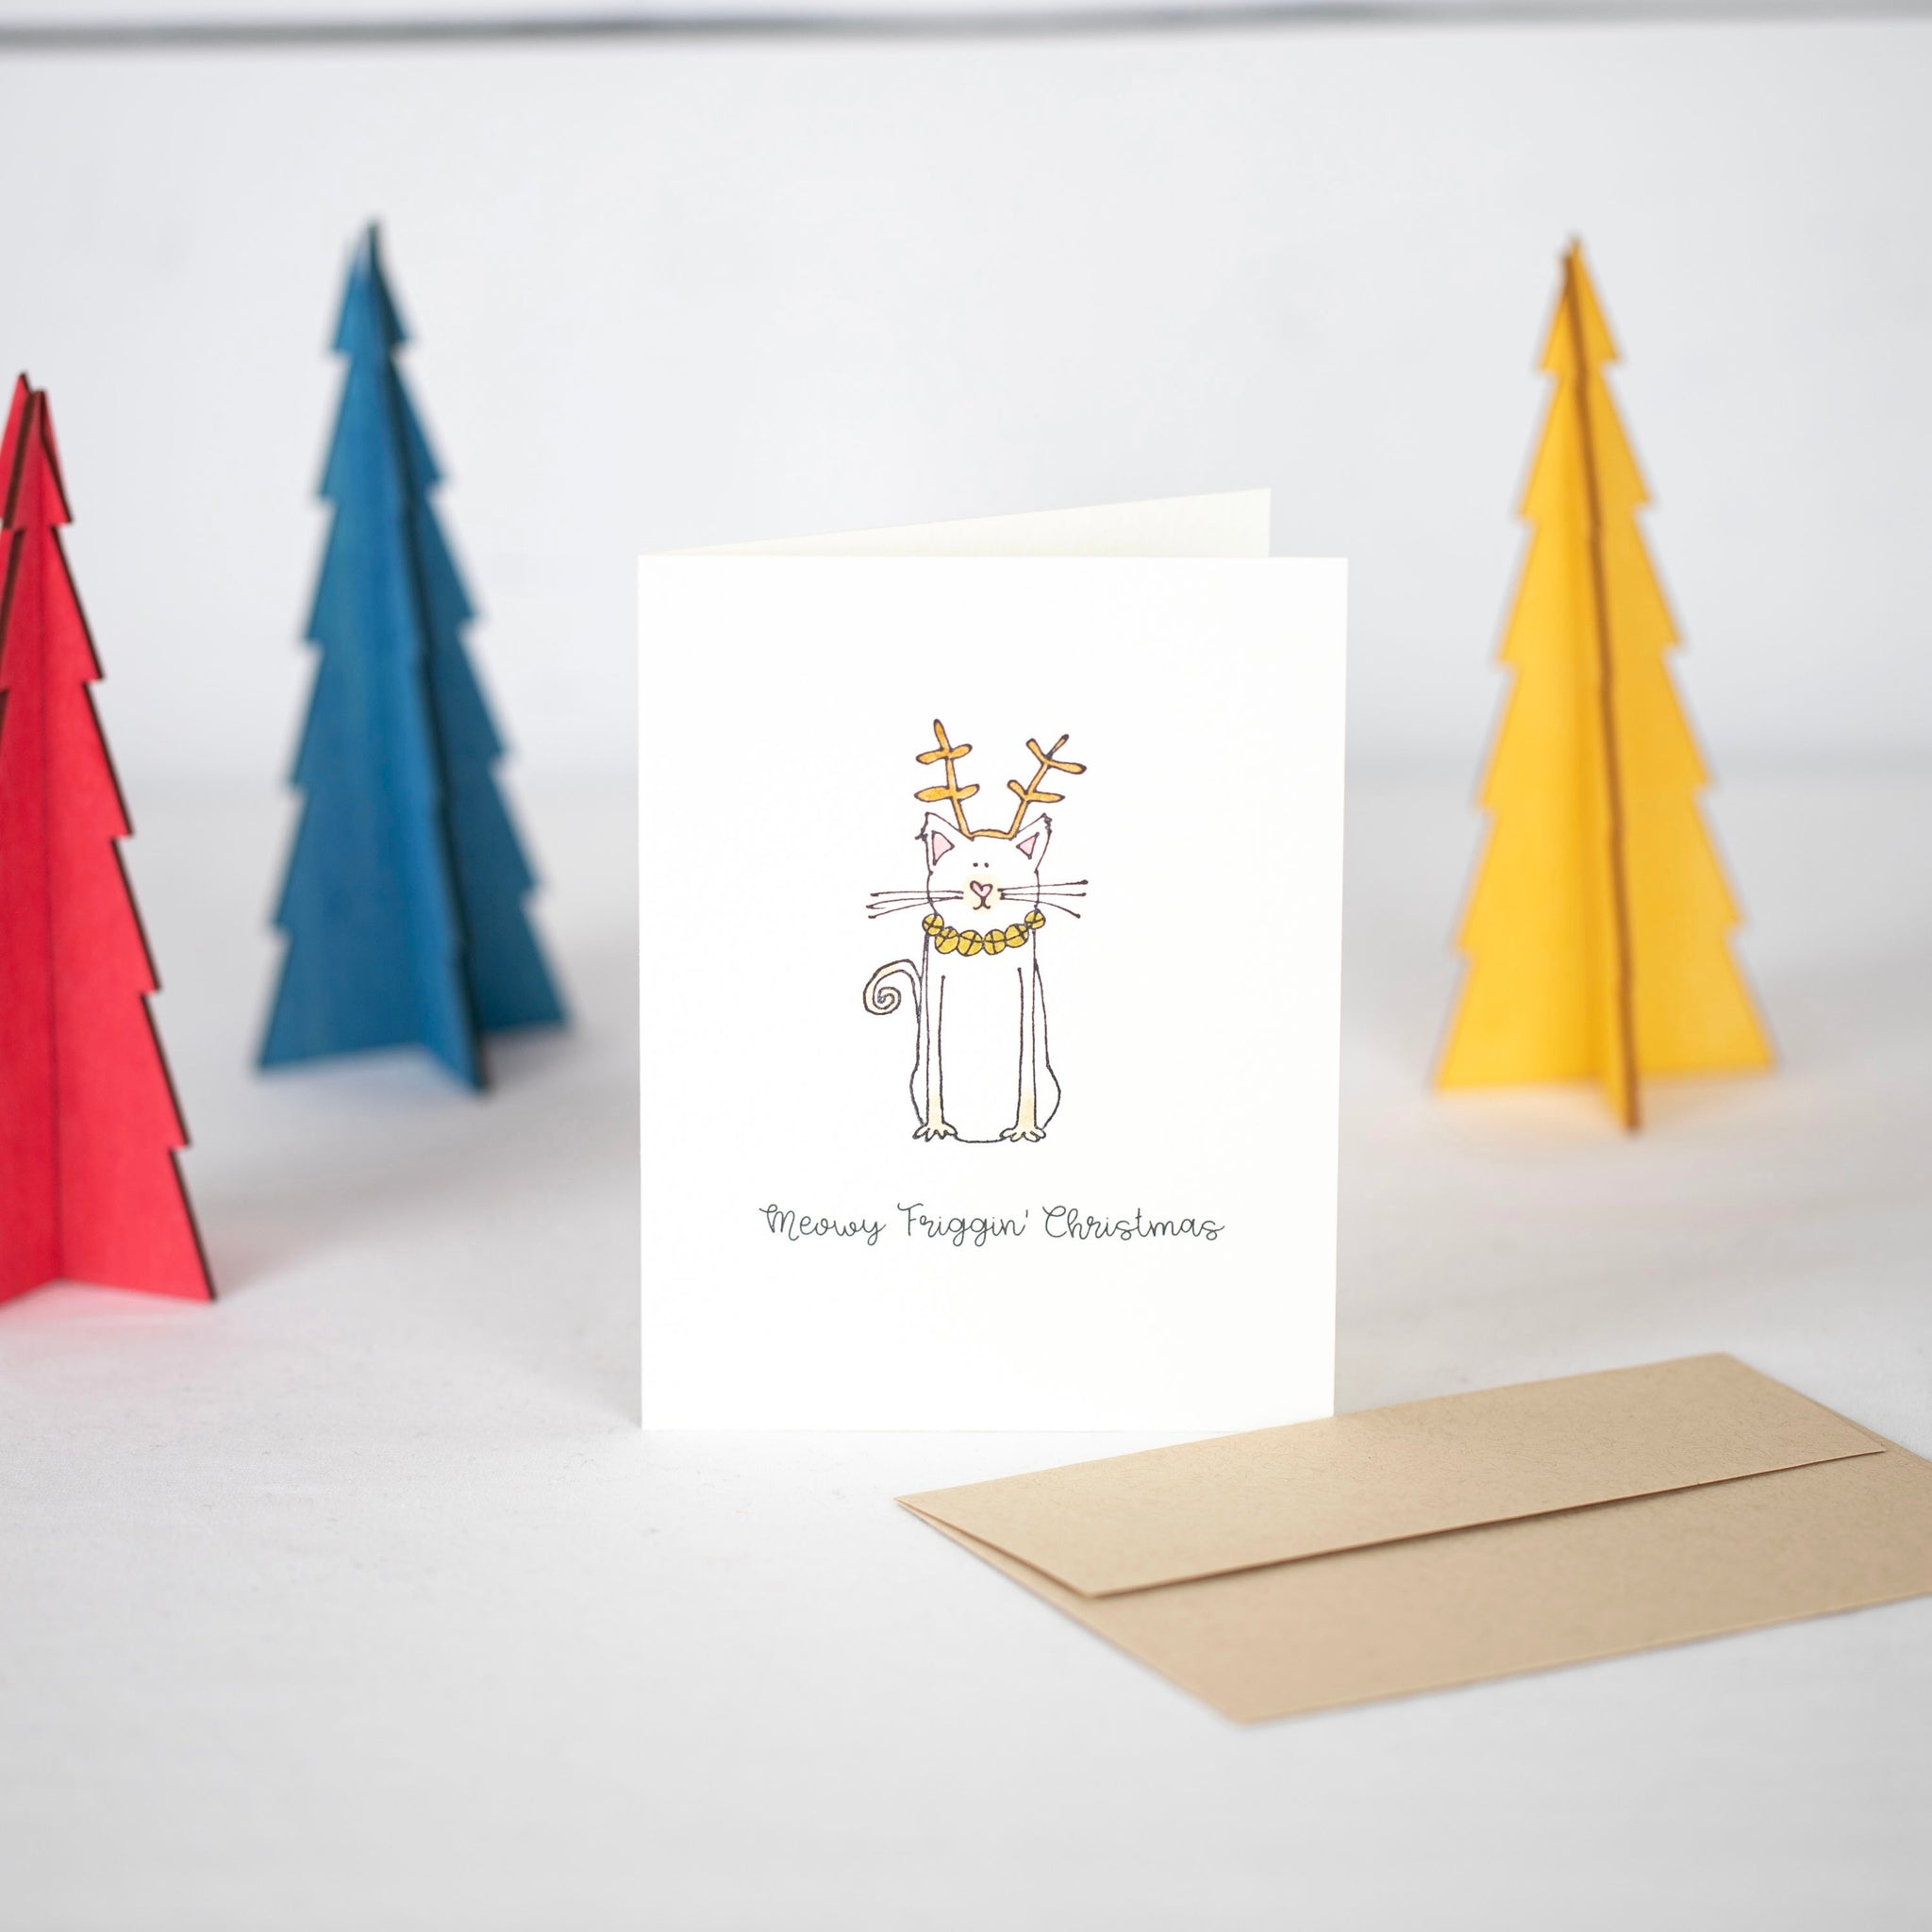 Meowy Friggin Christmas Card by Driven To Ink